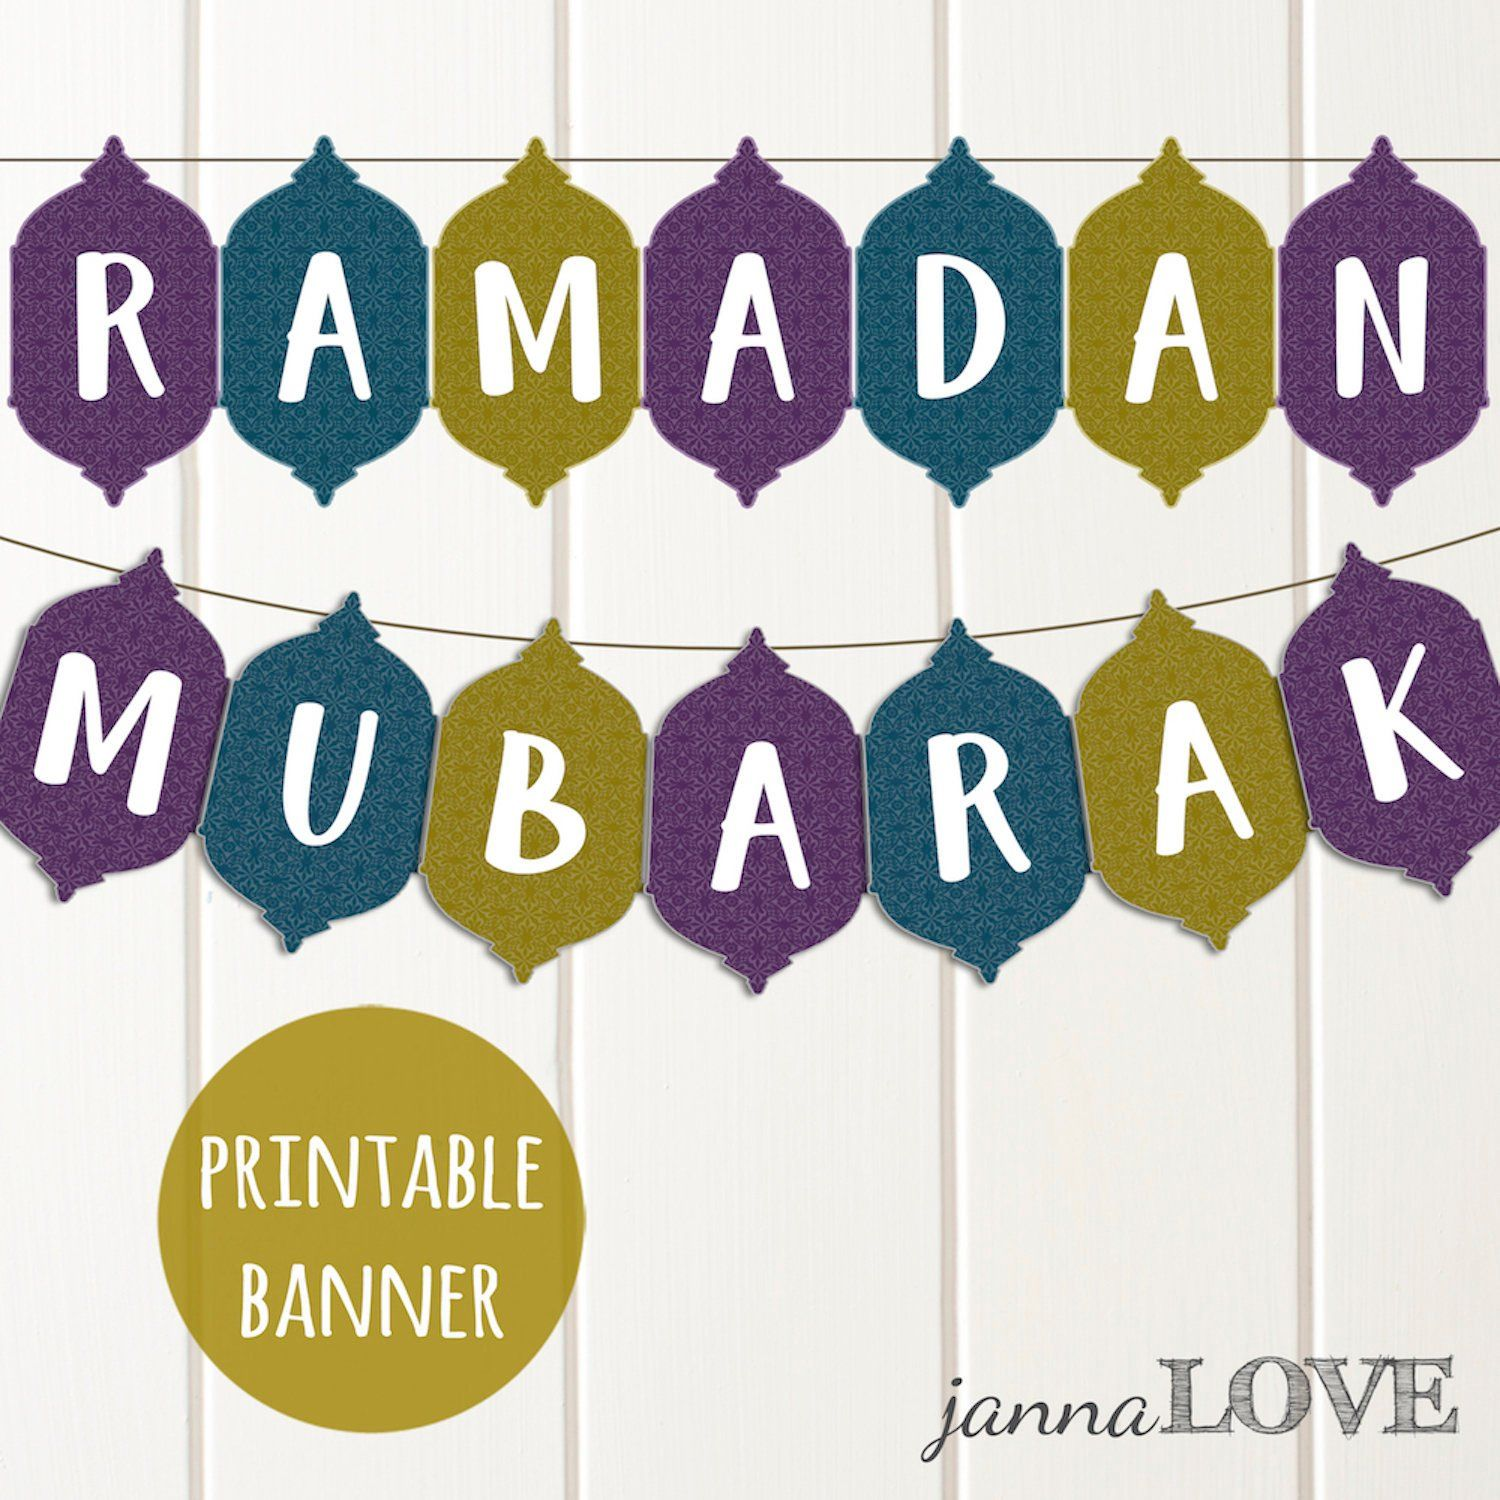 Printable Ramadan Mubarak Banner In Patterned Lantern